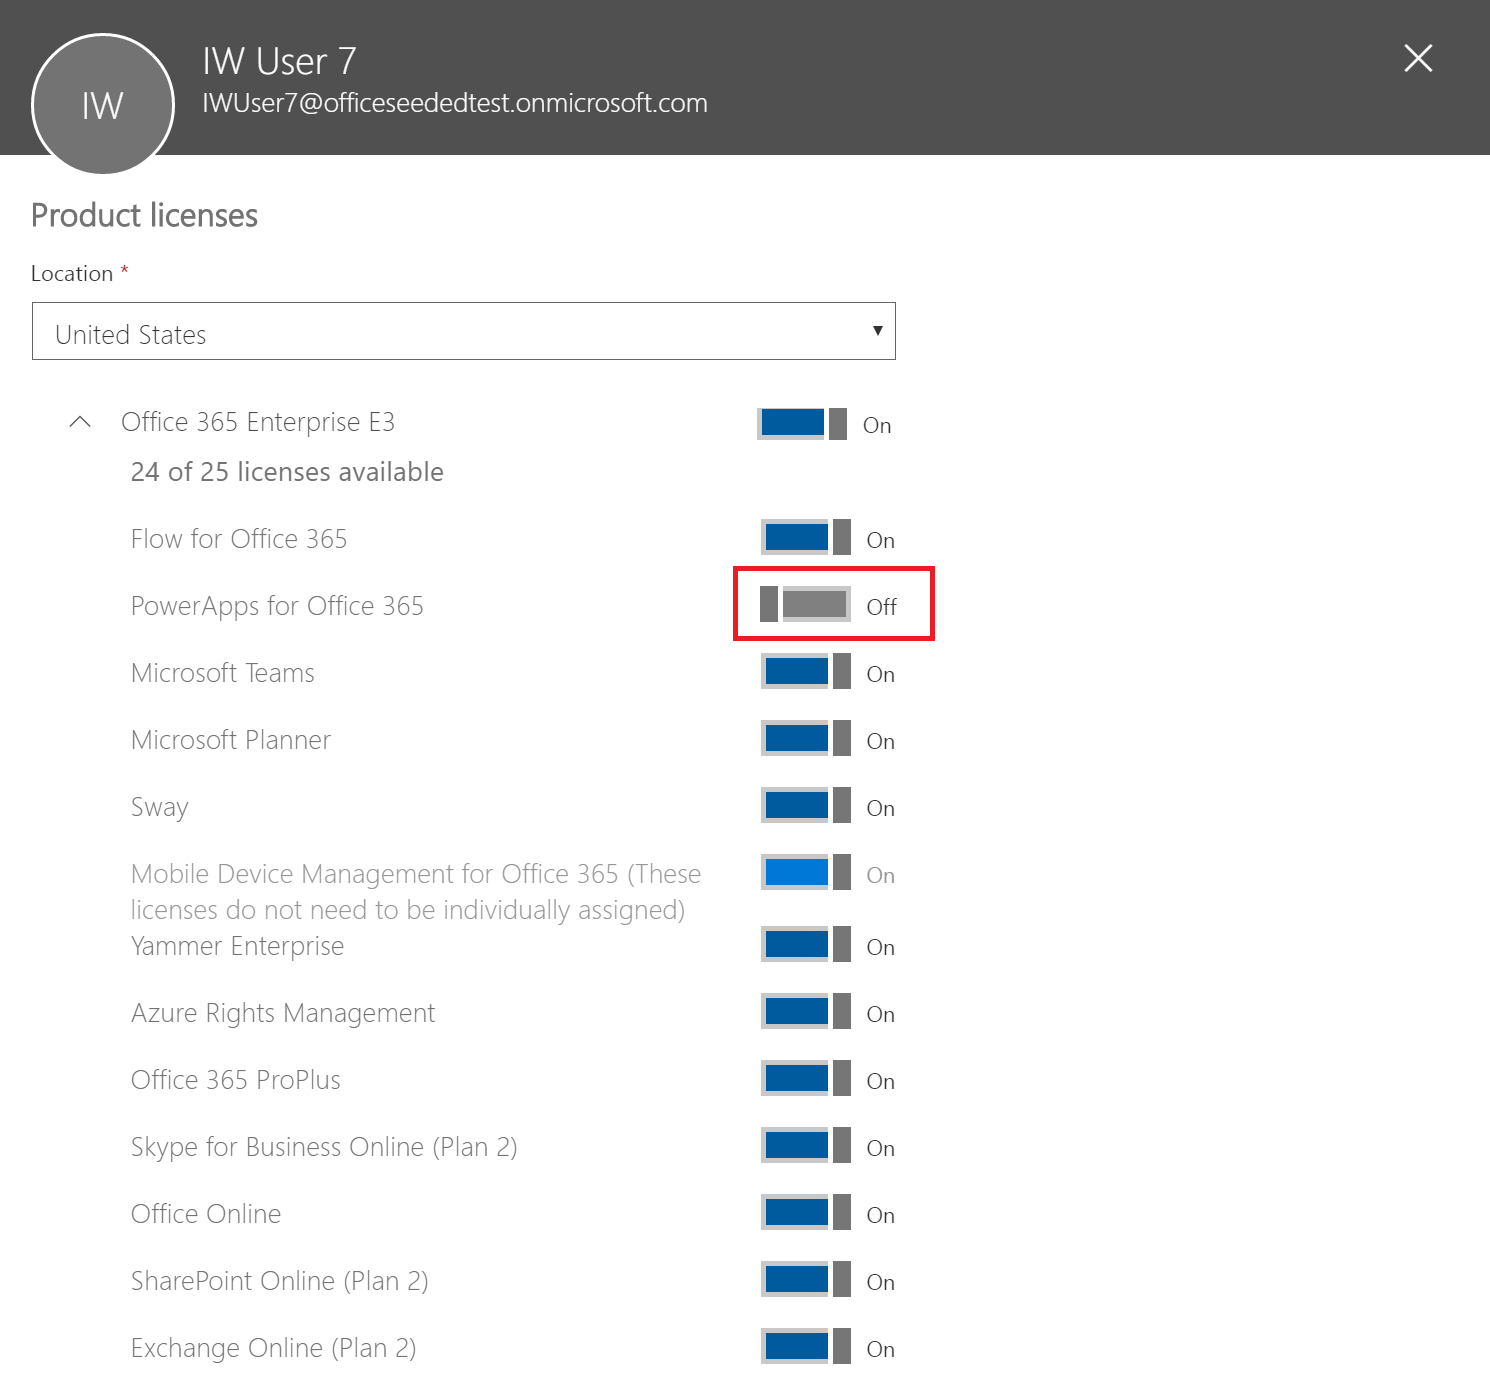 PowerApps in your organization Q&A